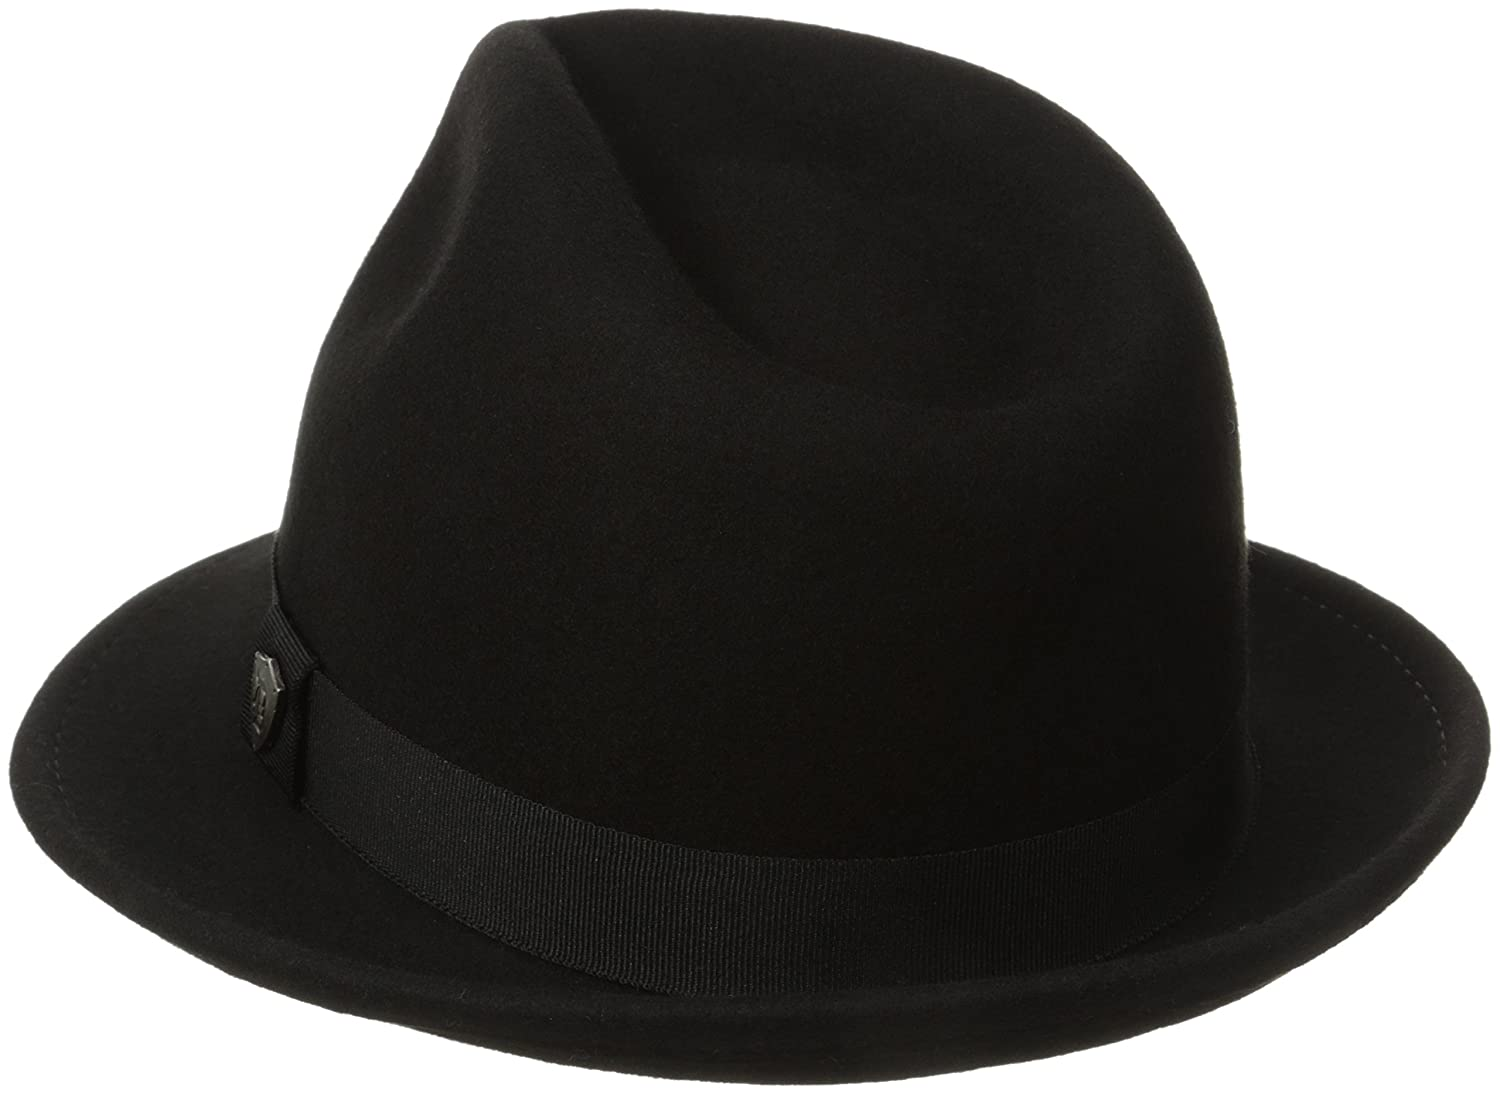 1940s Men's Costumes: WW2, Sailor, Zoot Suits, Gangsters, Detective Dorfman Wool Felt Hat $44.95 AT vintagedancer.com